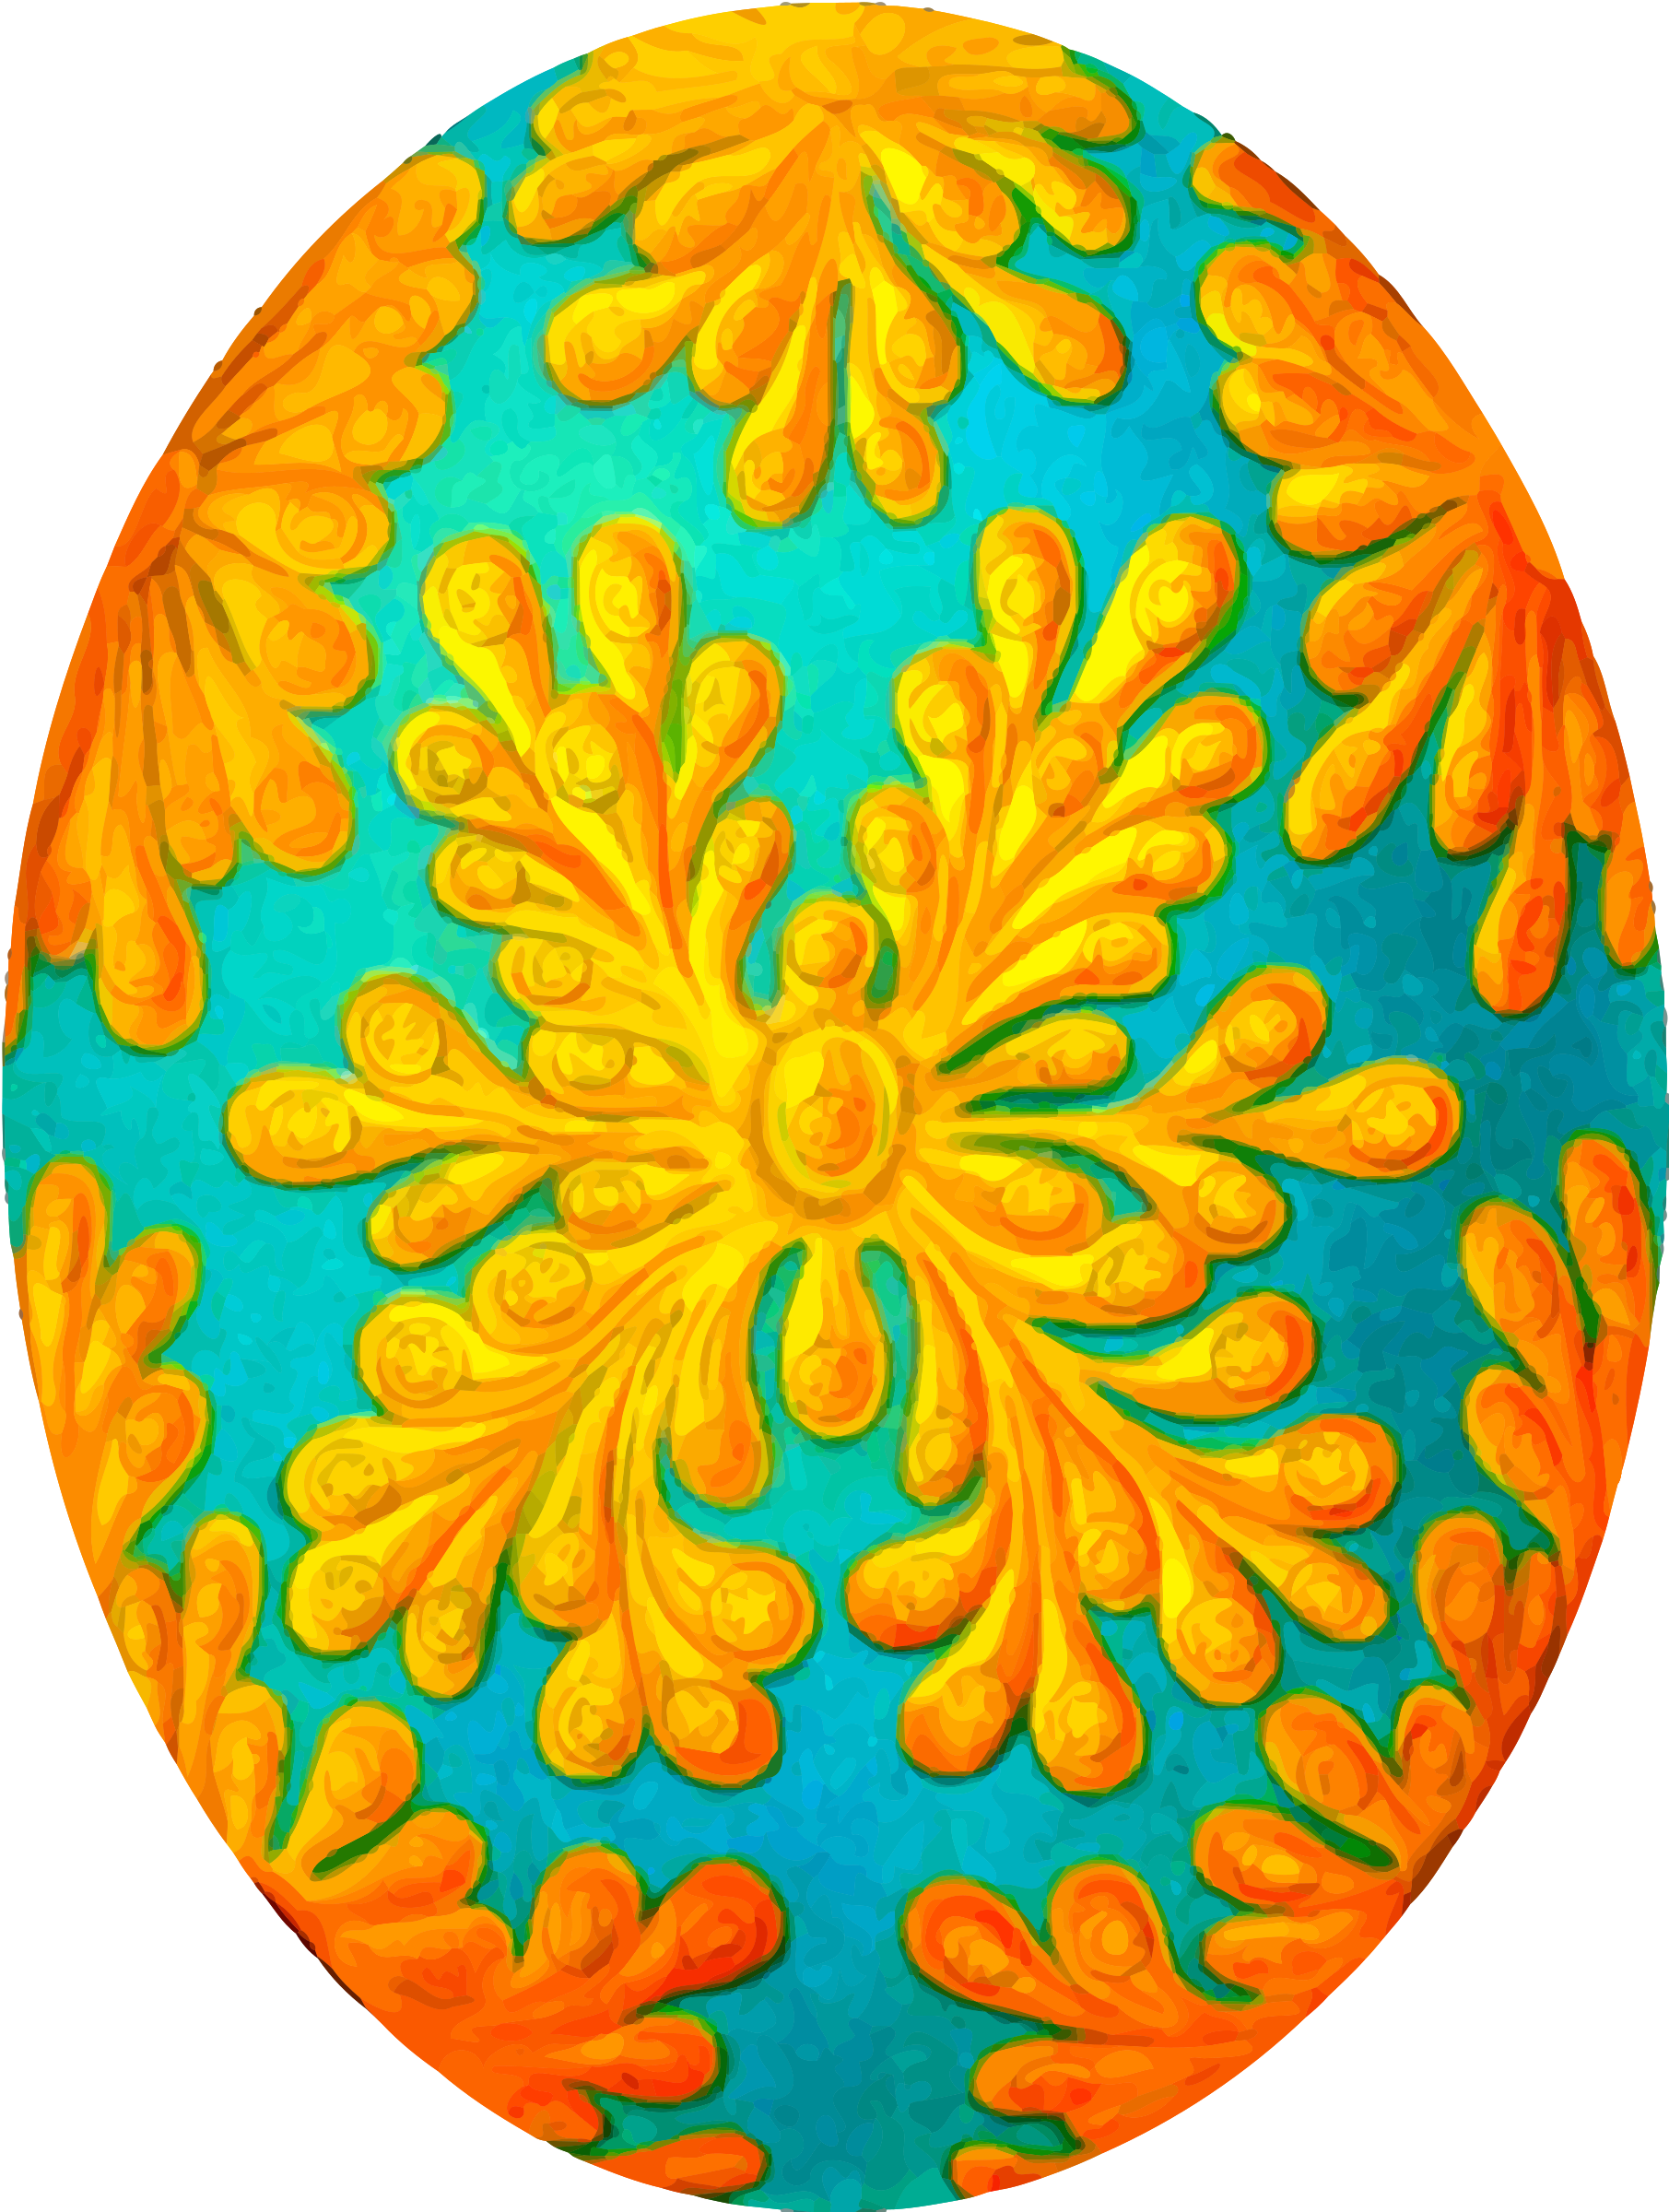 Decorated egg 3 by Firkin